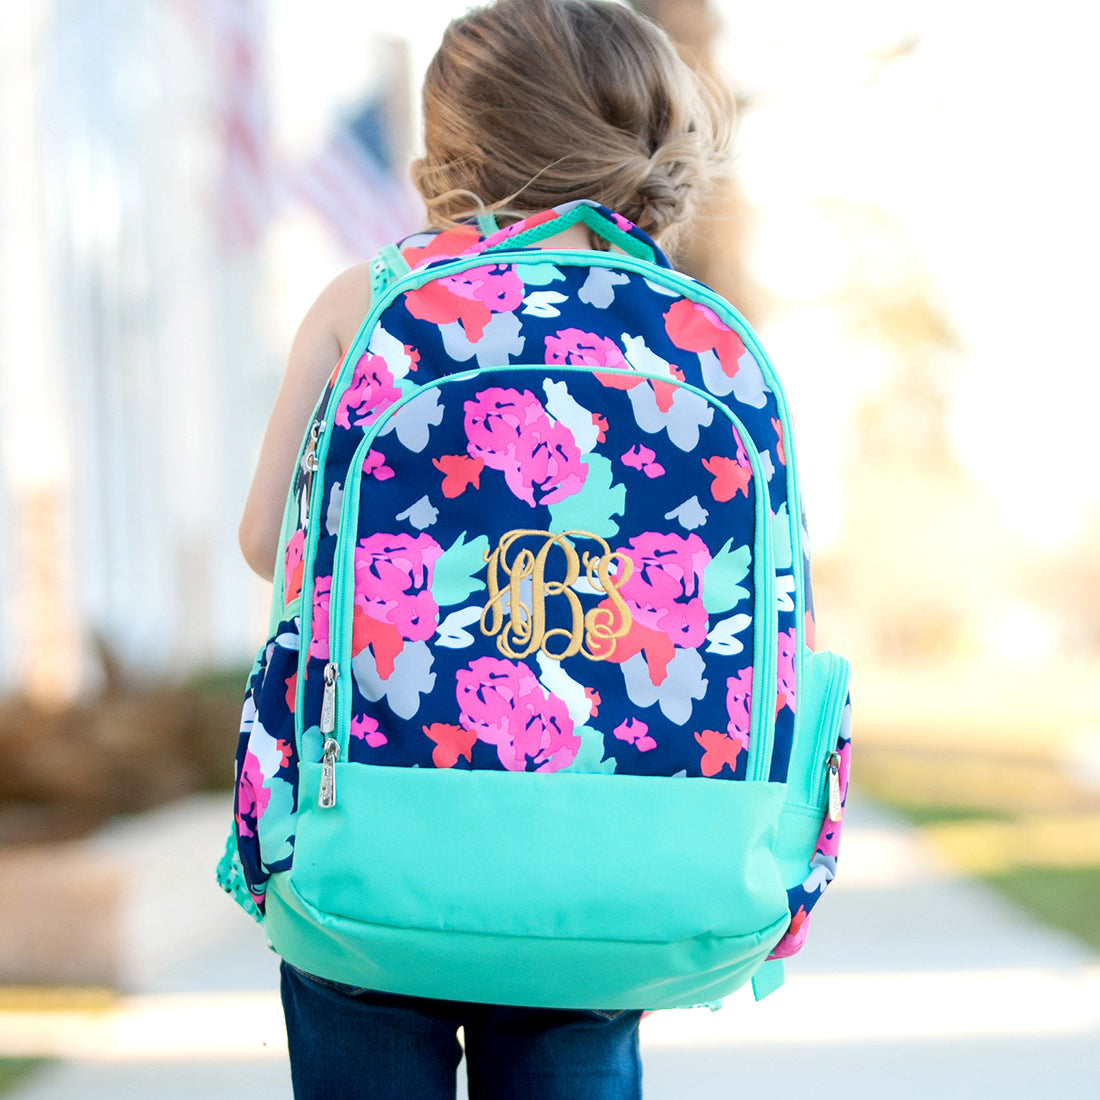 Personalized School Backpacks available soon from PinkBlush!